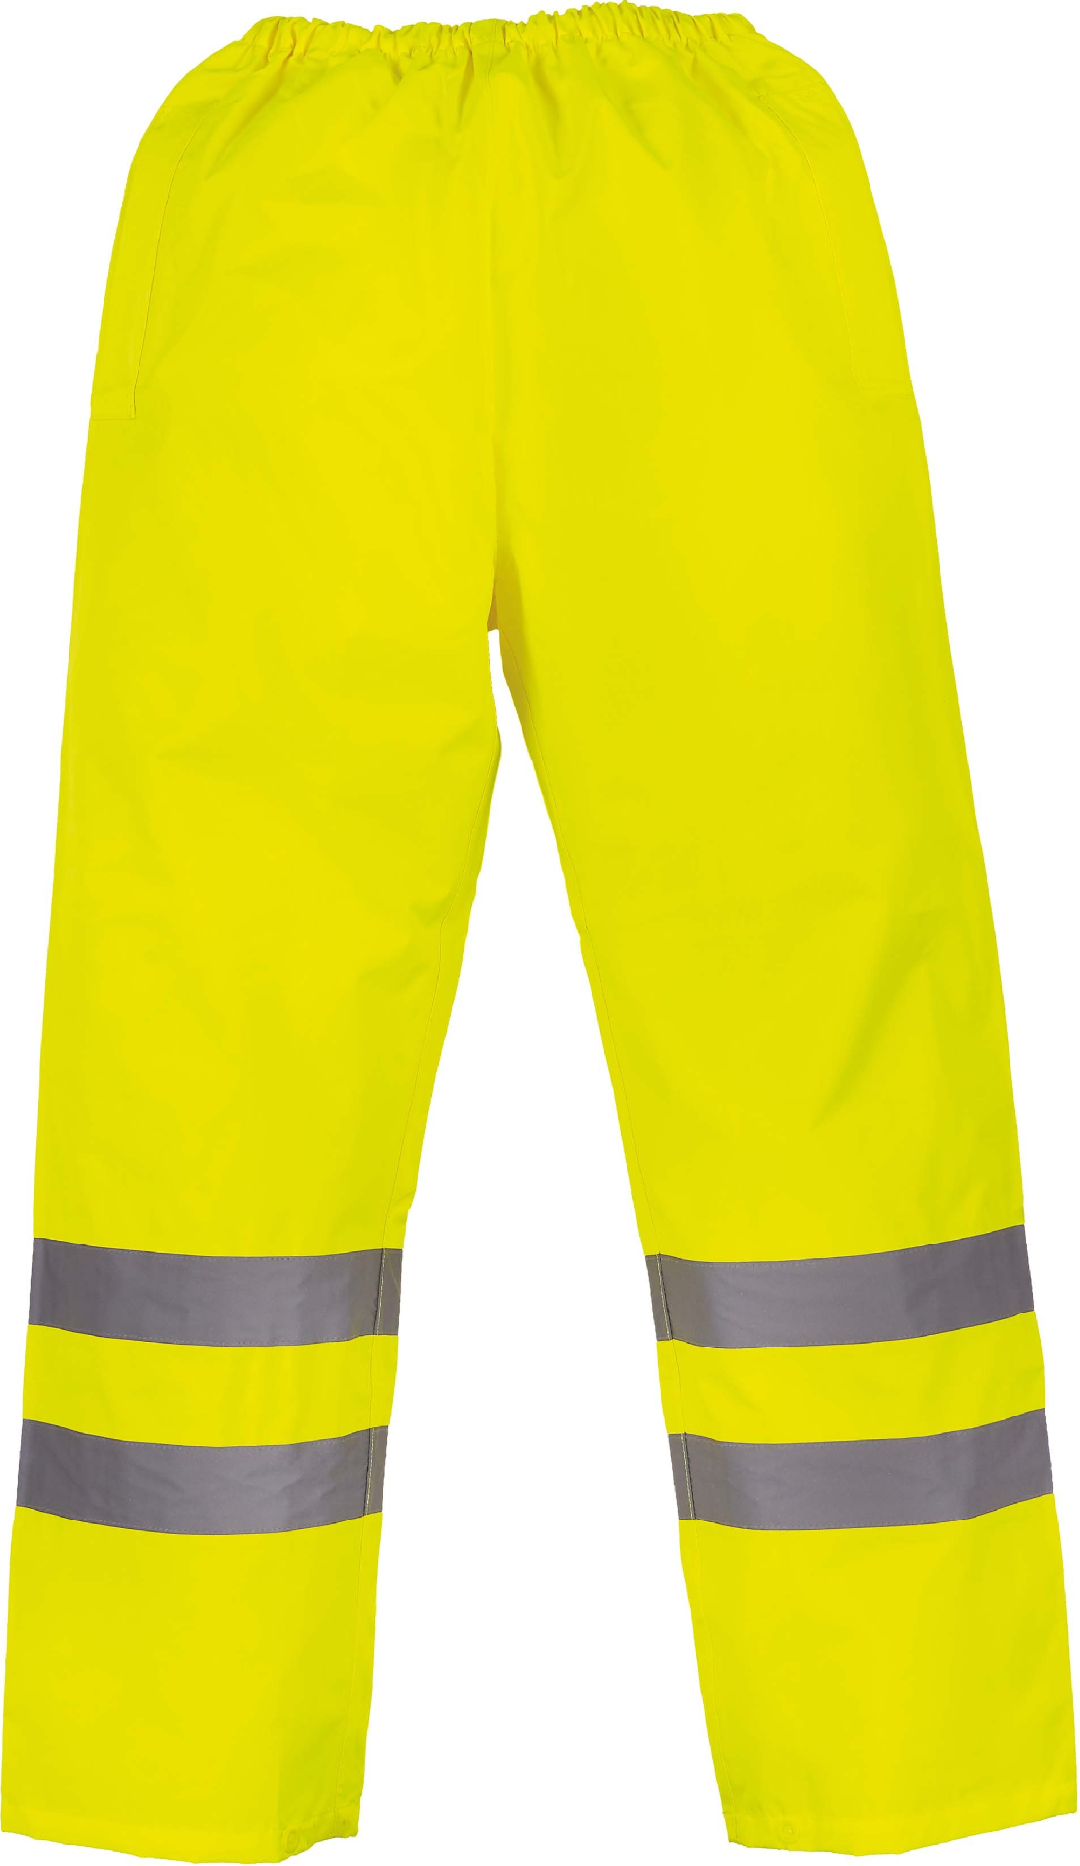 High visibility and waterproof Unisex pants